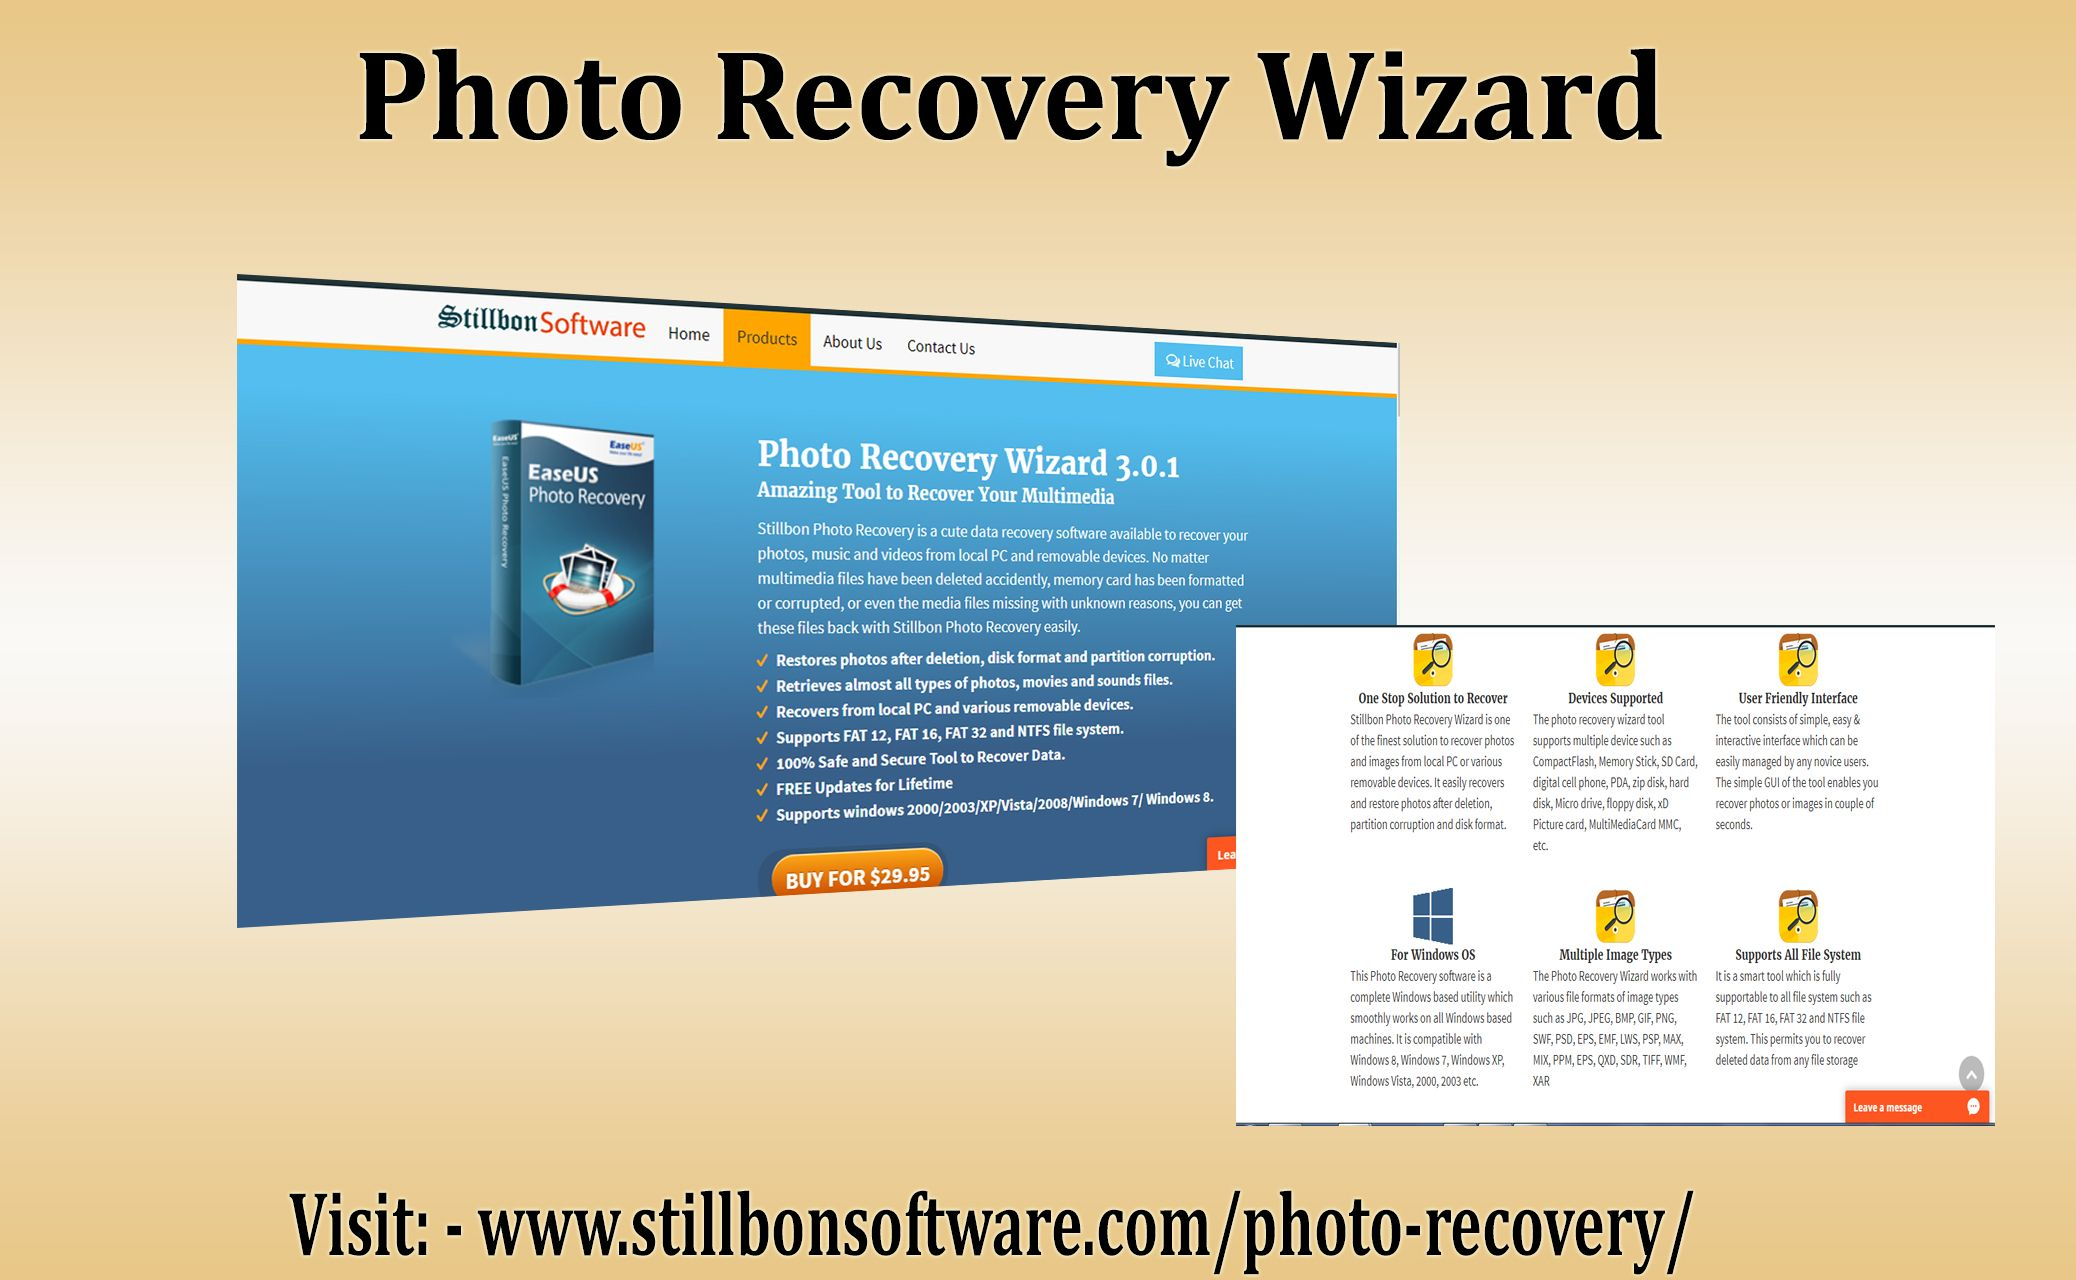 Stillbon Photo Recovery Wizard Allows You To Recover Deleted